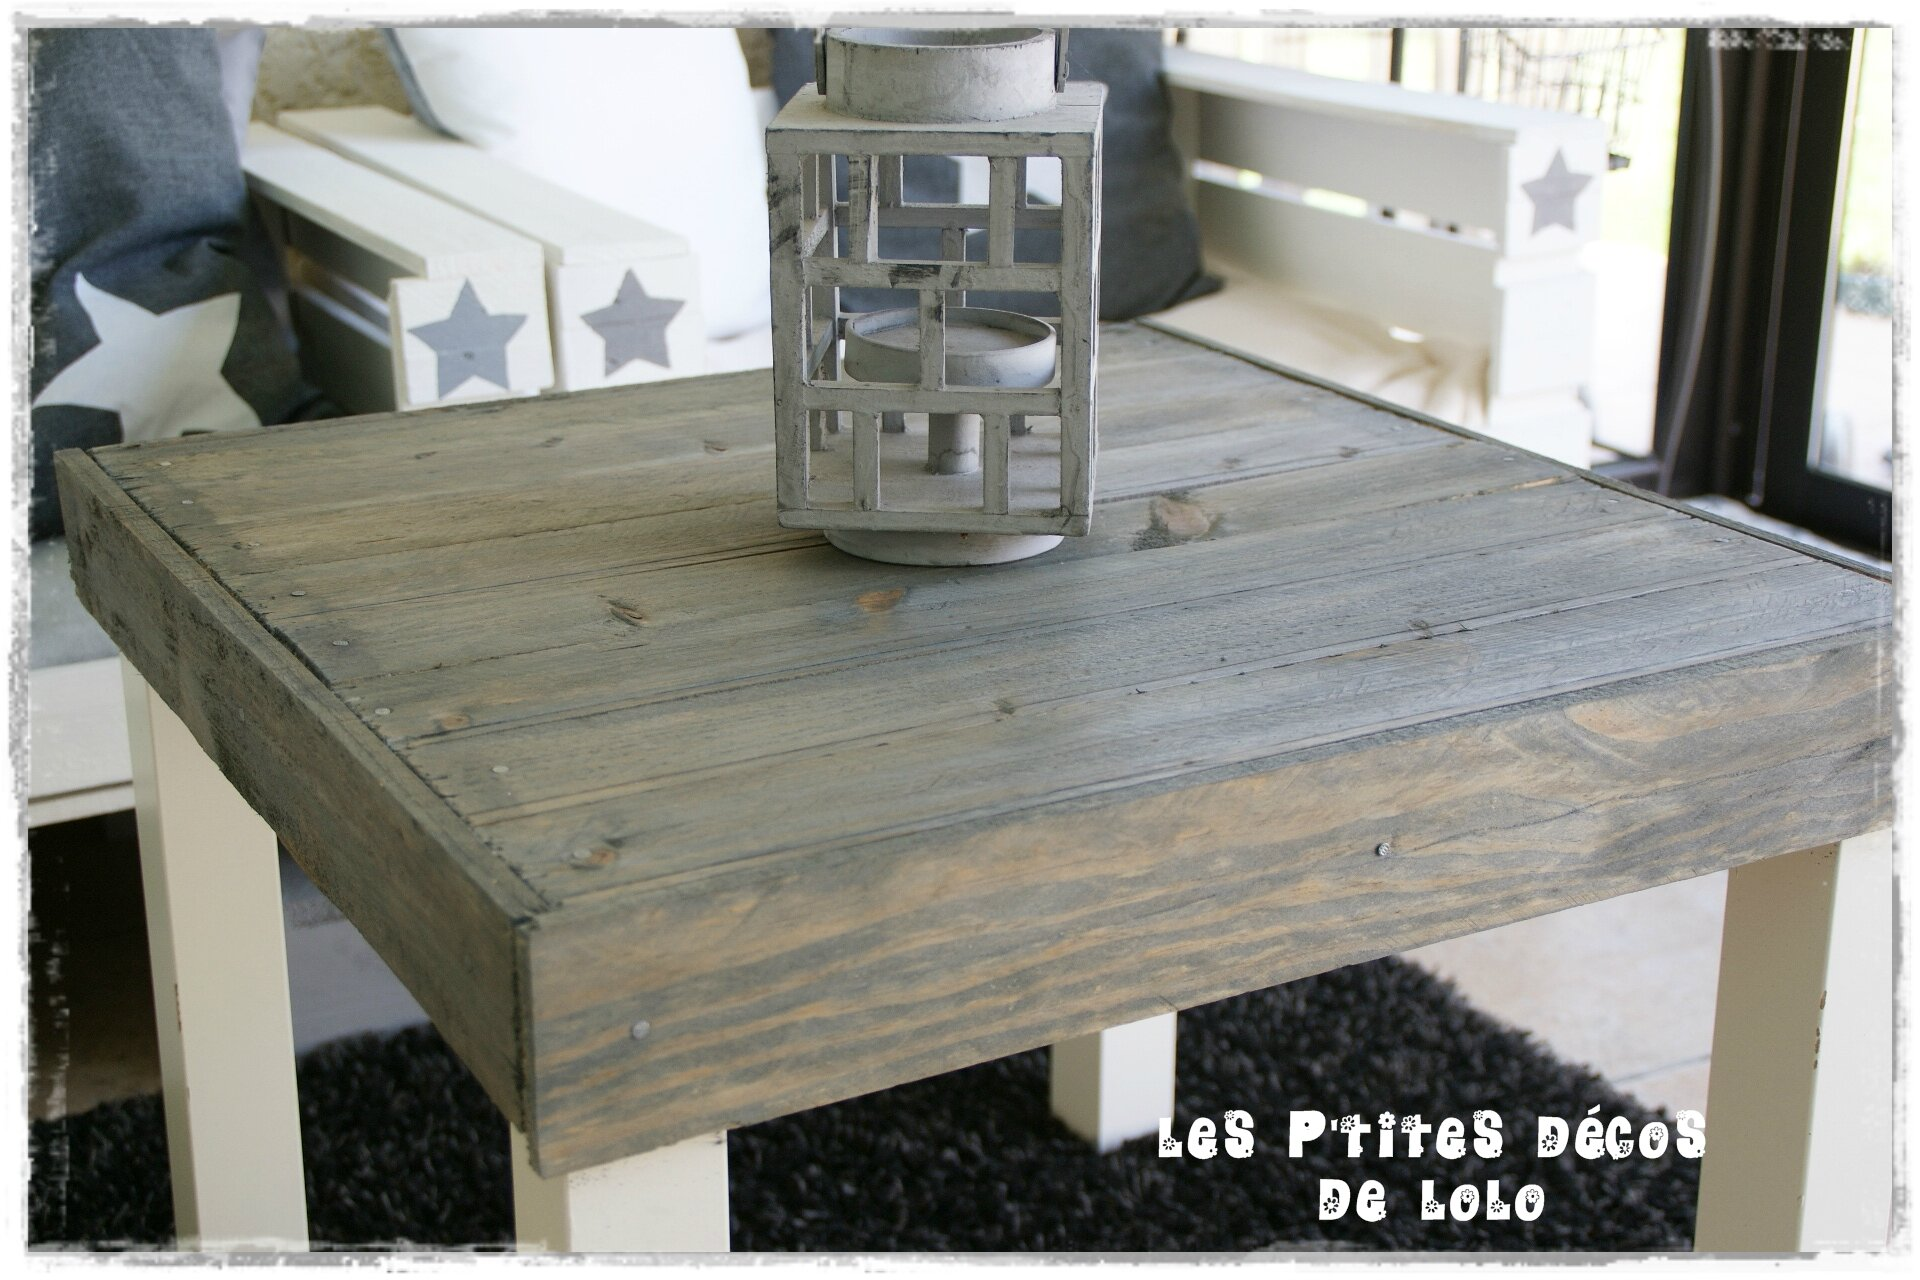 Les p 39 tites d cos de lolo - Customiser une table basse en bois ...